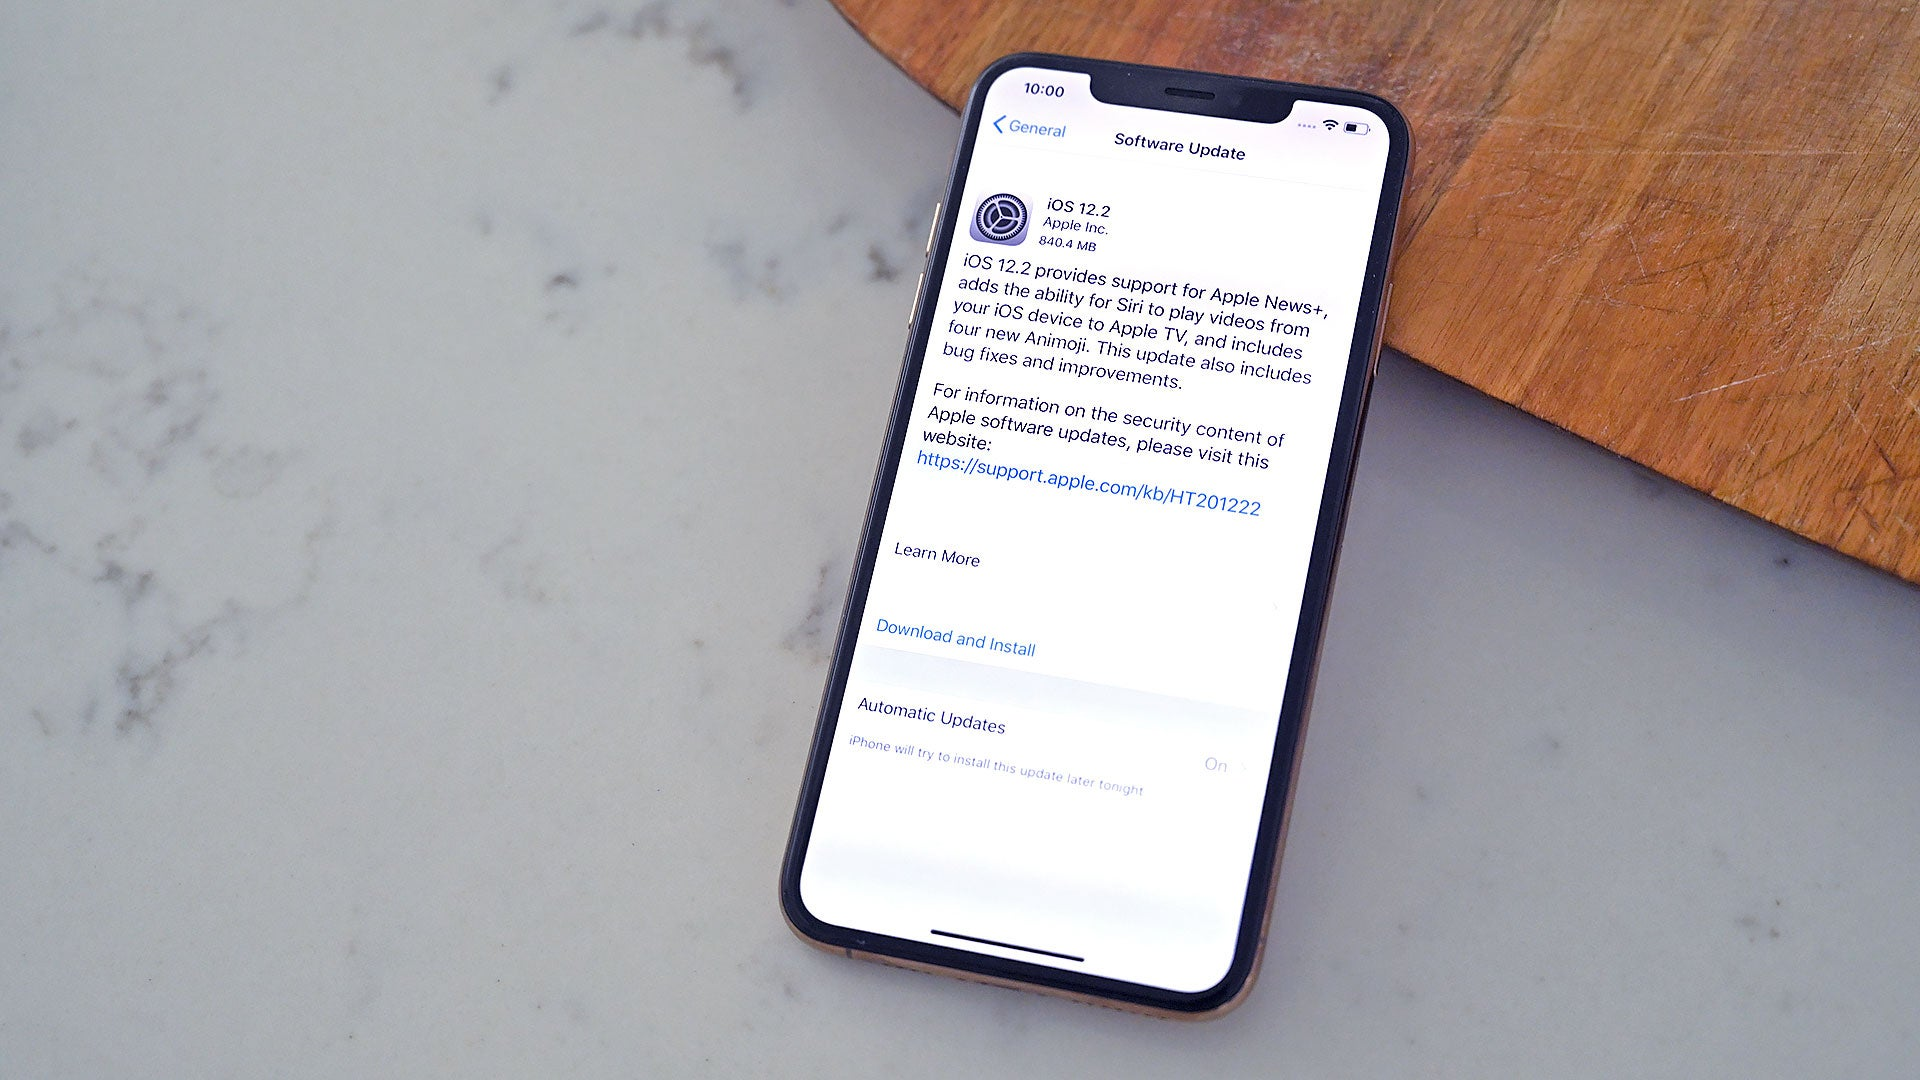 You Need To Update To IOS 12.2 Right Now To Fix More Than 50 Security Holes